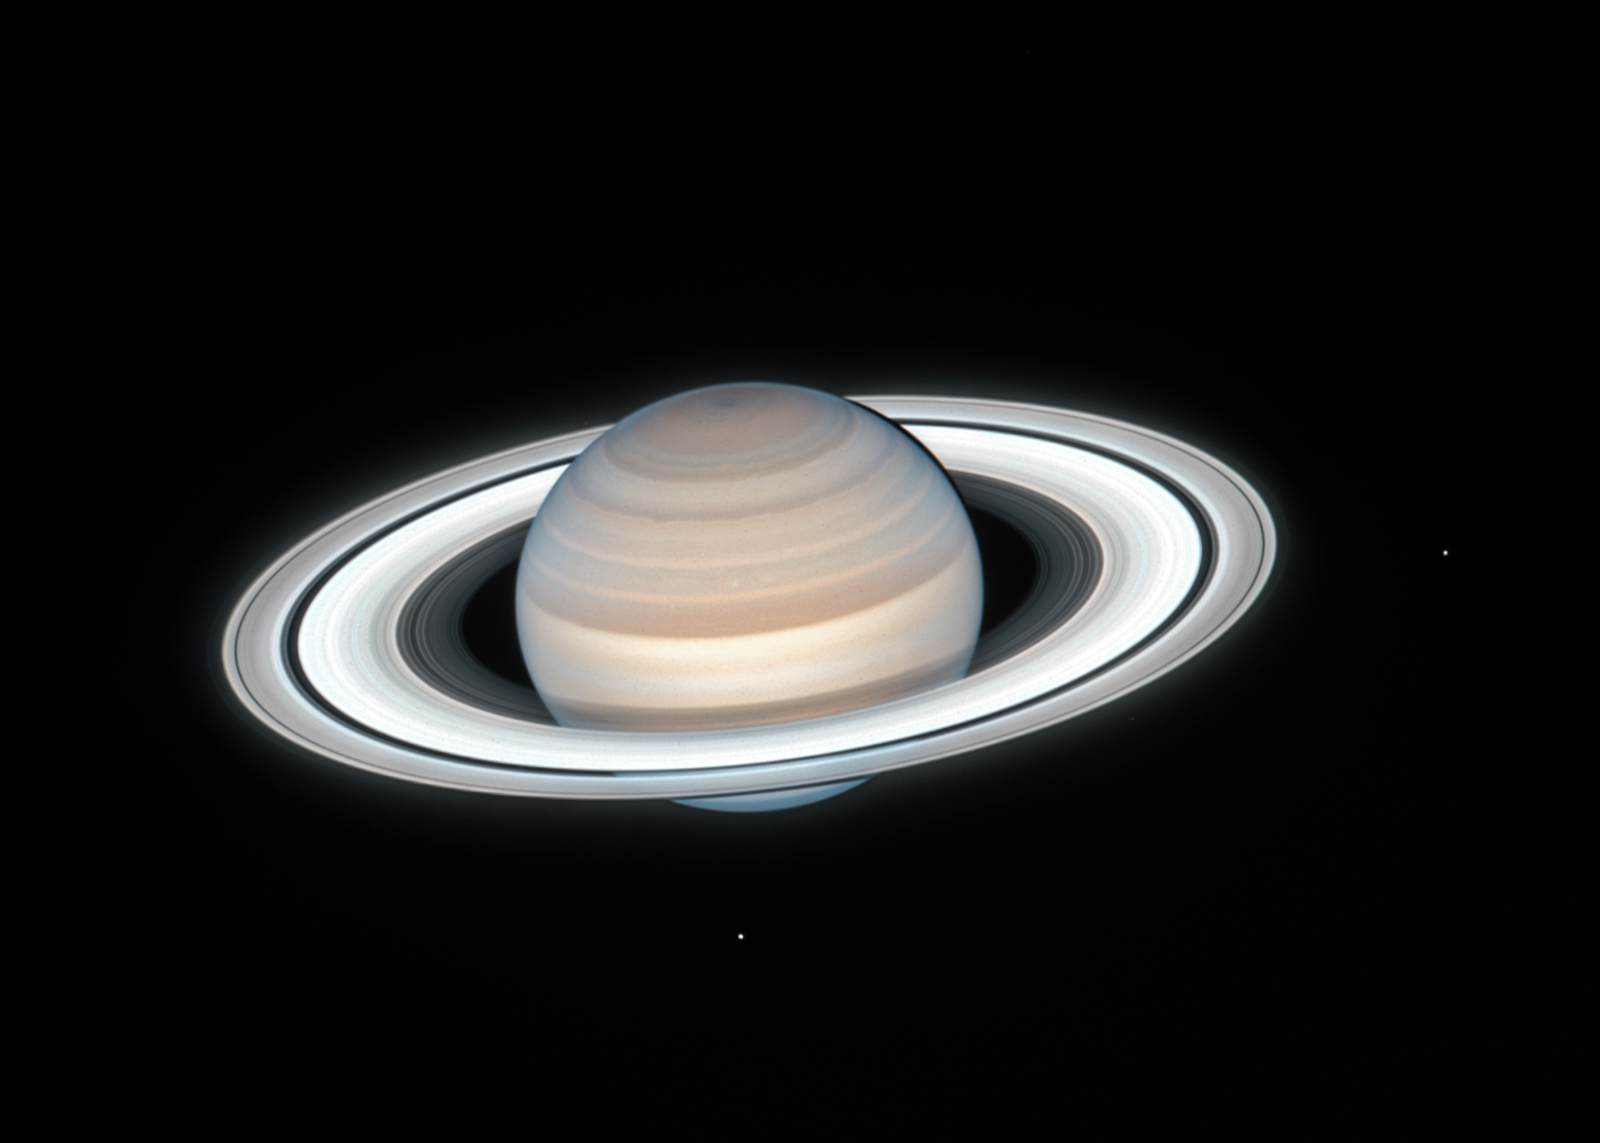 Hubble telescope captures stunningly clear image of summertime on Saturn